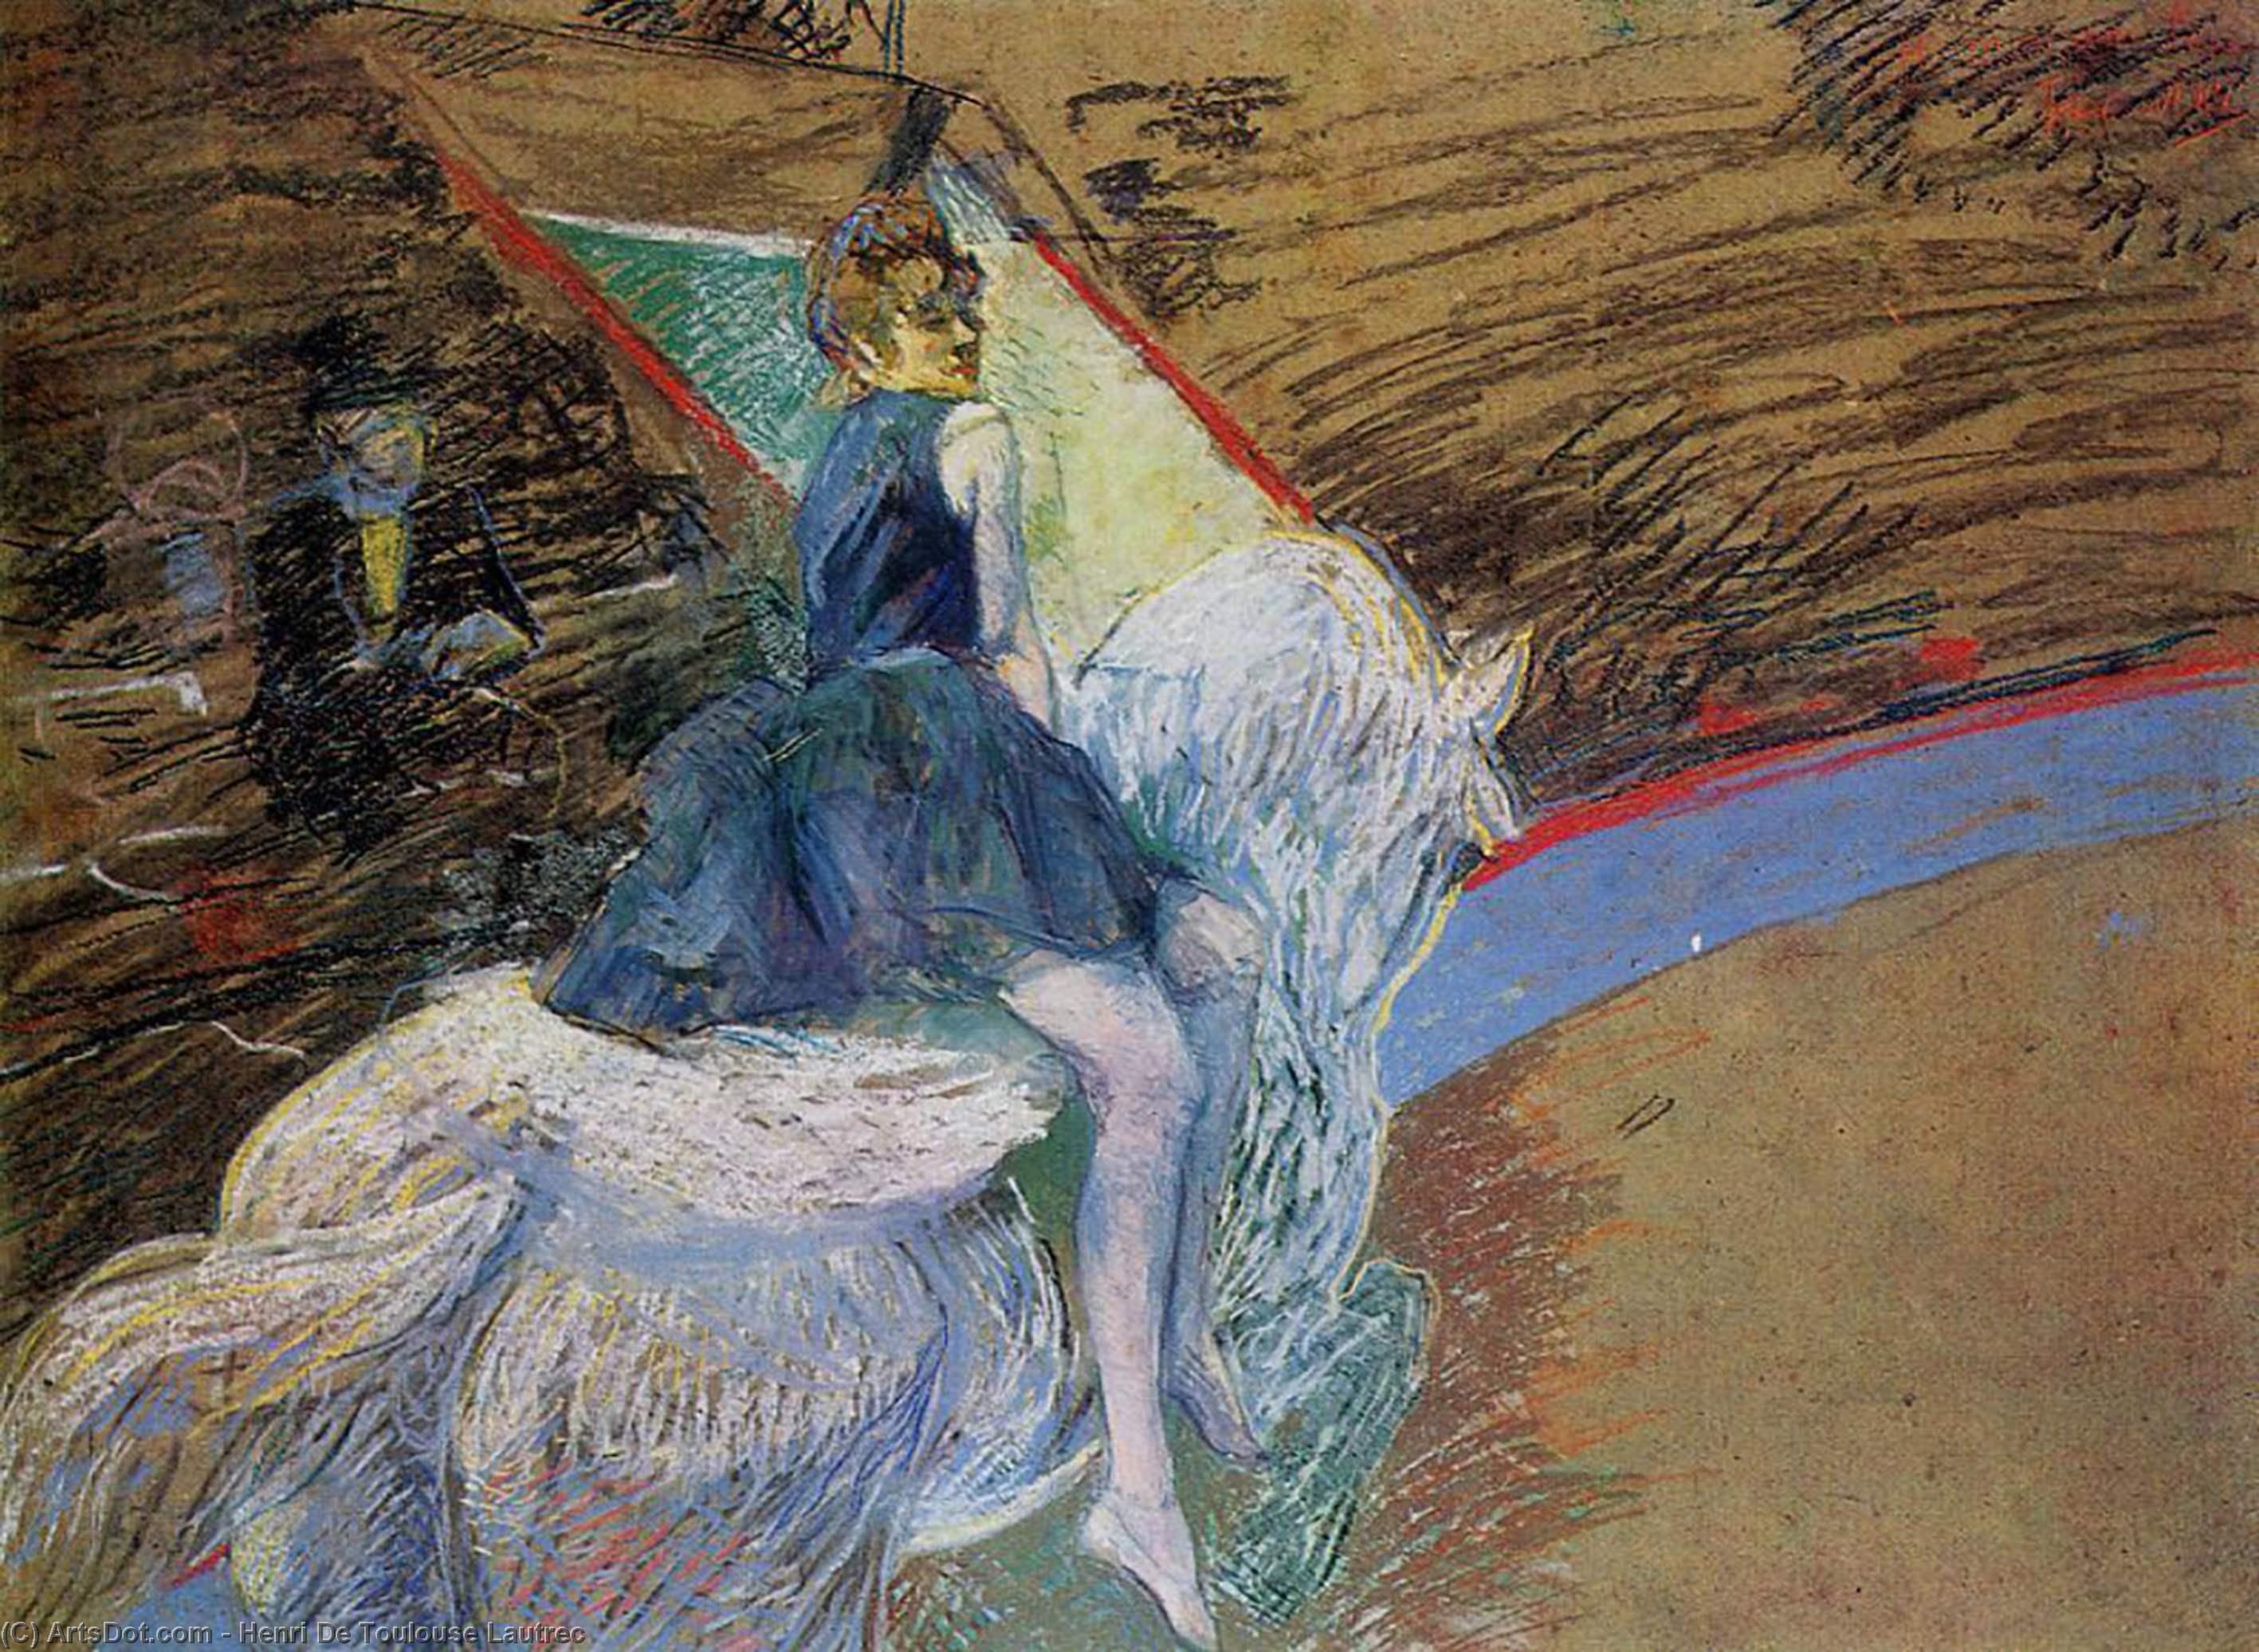 At the Cirque Fernando. Rider on a White Horse, Oil by Henri De Toulouse Lautrec (1864-1901, France)